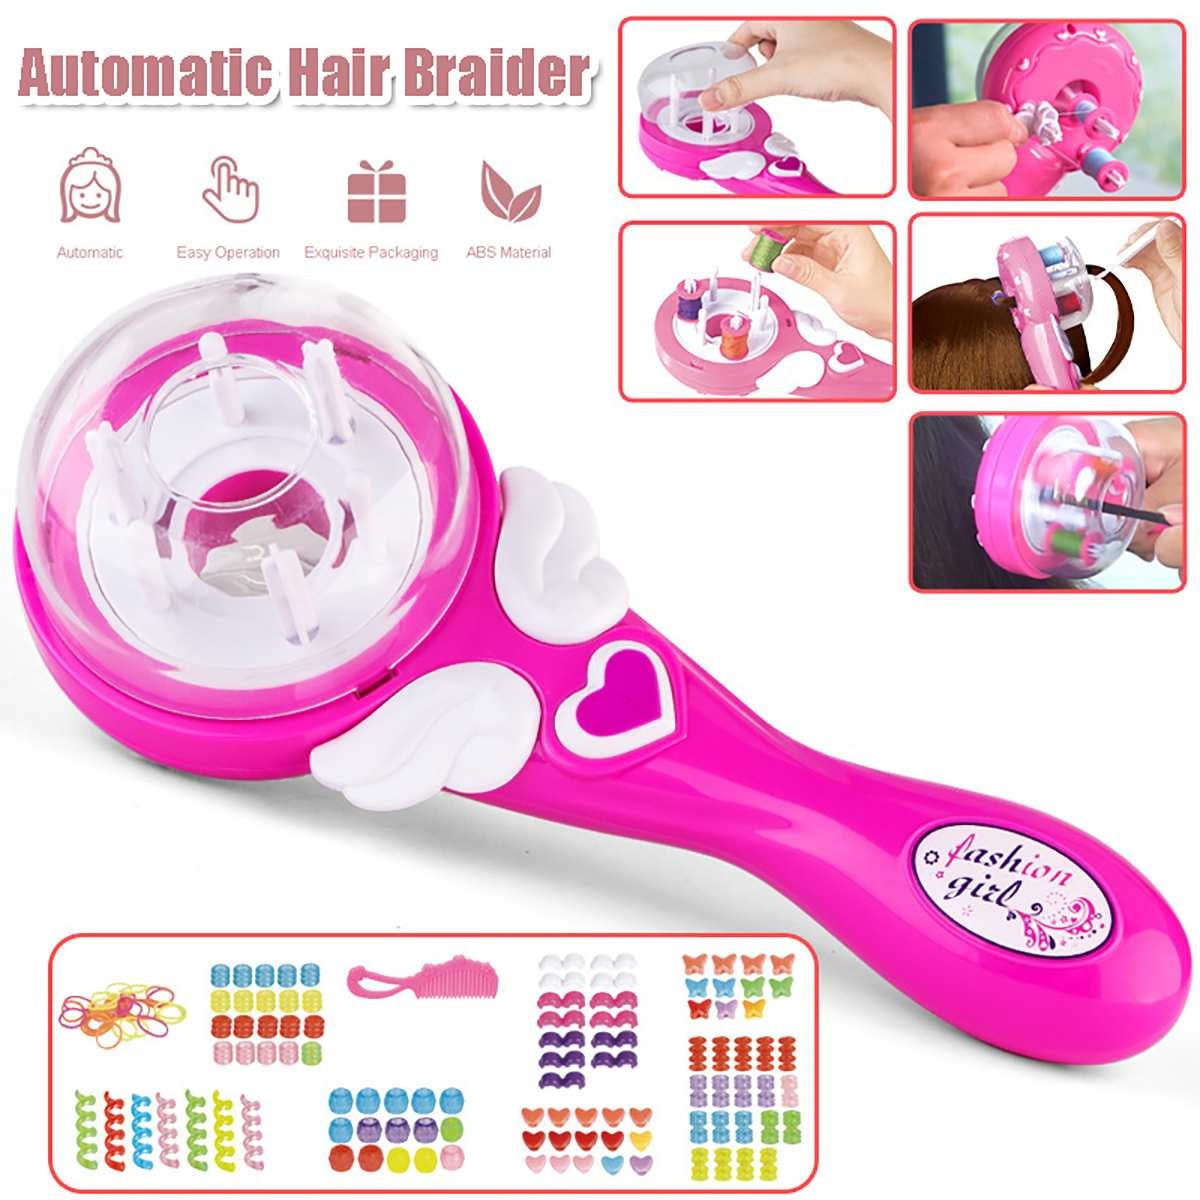 Electric Automatic DIY Hair Knitting Machine Braid Hair Tools Twist Knitting Hair Knitting Roll Twisted Xmas Girl Gift - Lordlys-Imperials